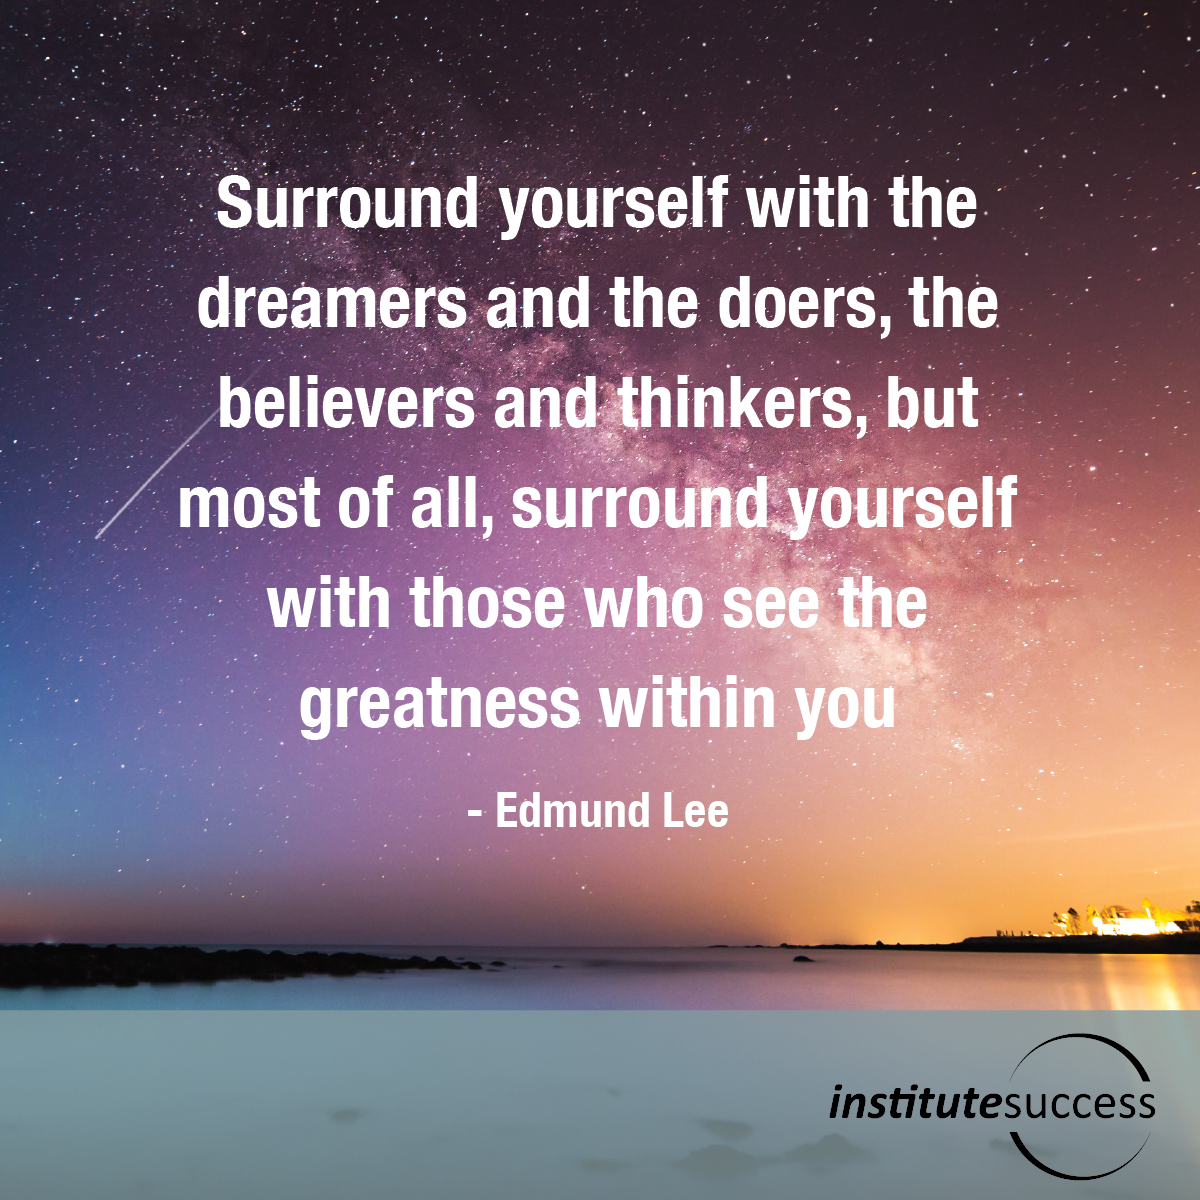 Surround yourself with the dreamers and the doers, the believers and thinkers, but most of all, surround yourself with those who see the greatness within you – Edmund Lee